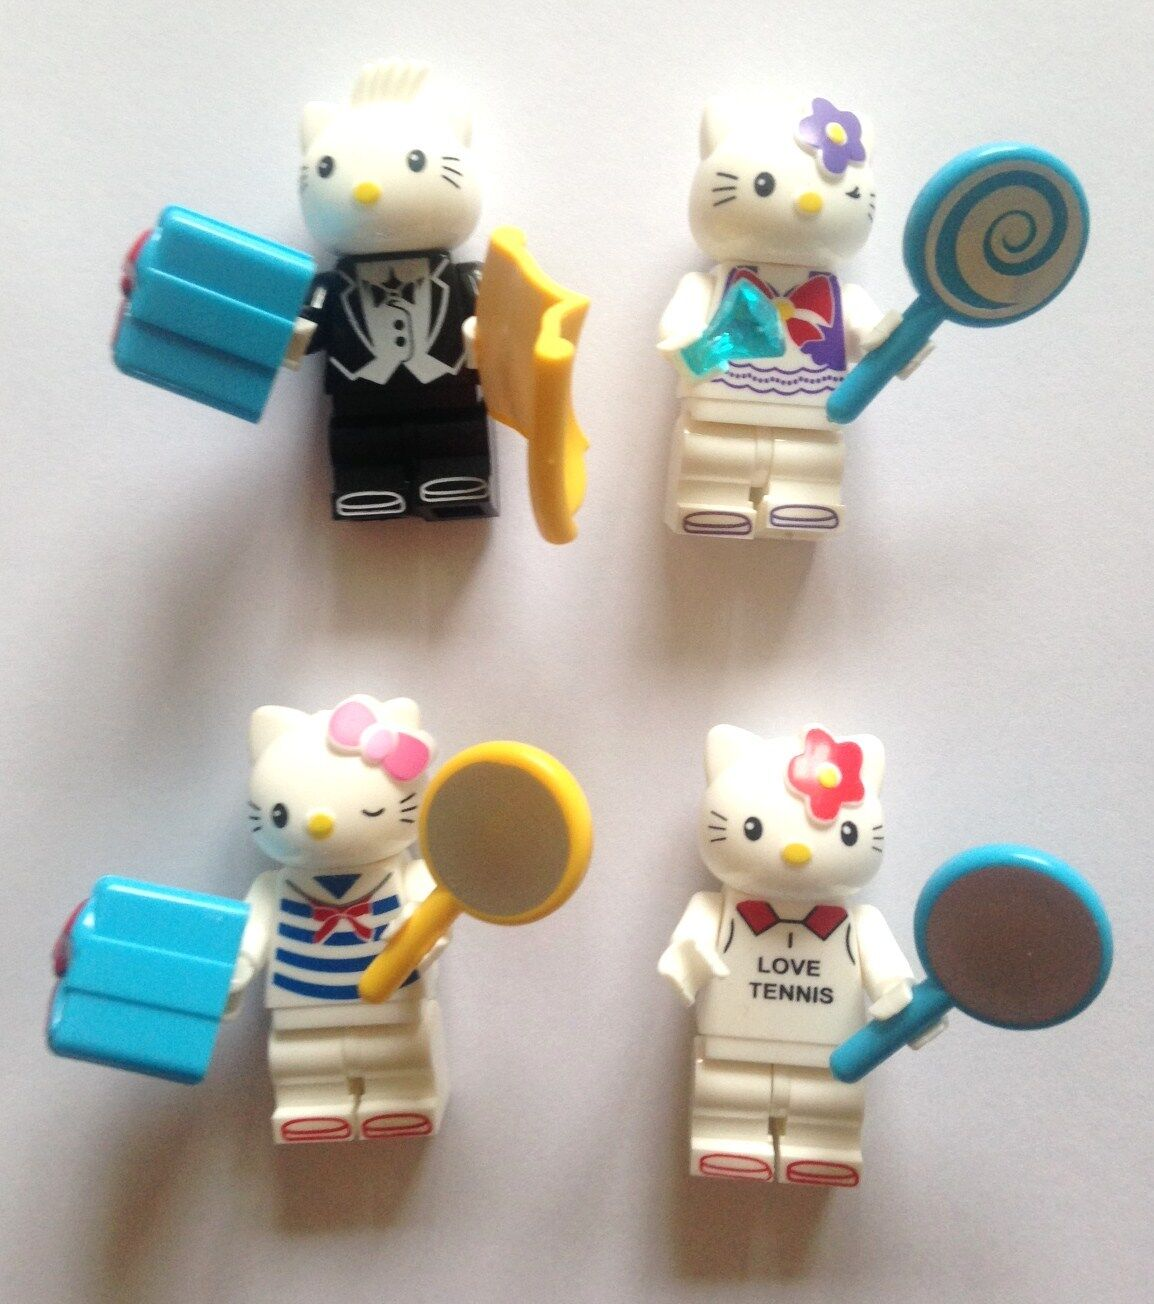 HELLO KITTY Minifigures Set of 4 Minifigure with Accessories Fits Lego 1 NEW